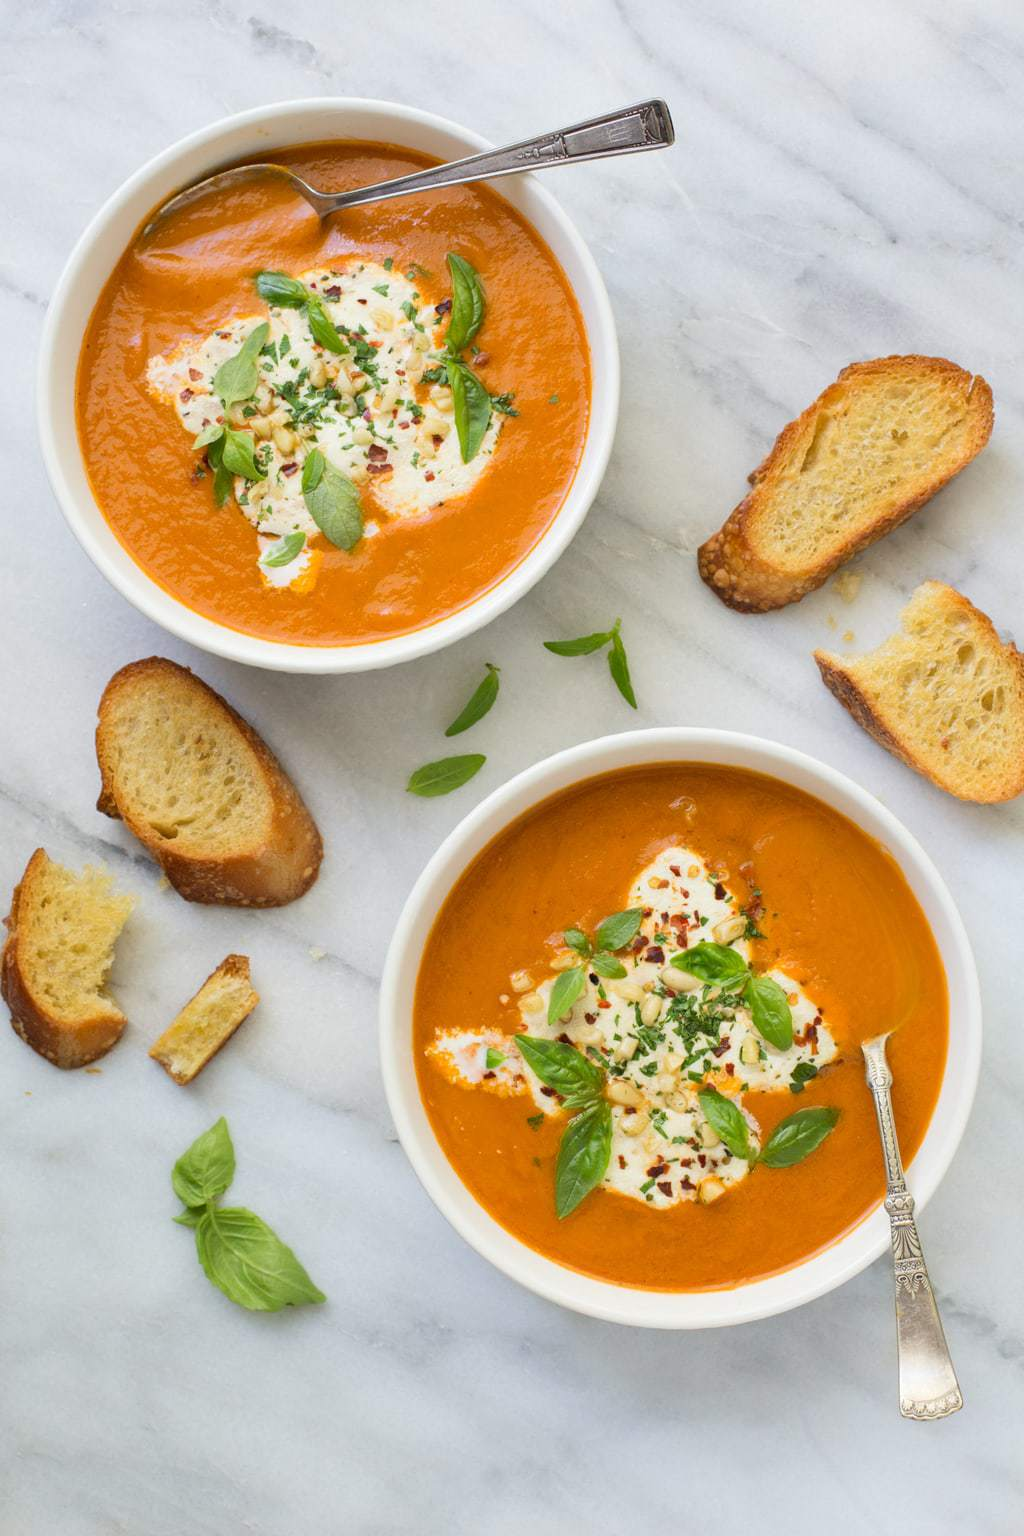 Fresh Tomato Basil Soup - There's nothing quite like tomato soup made from fresh tomatoes. Once you try it, you'll never want it any other way! thecafesucrefarine.com